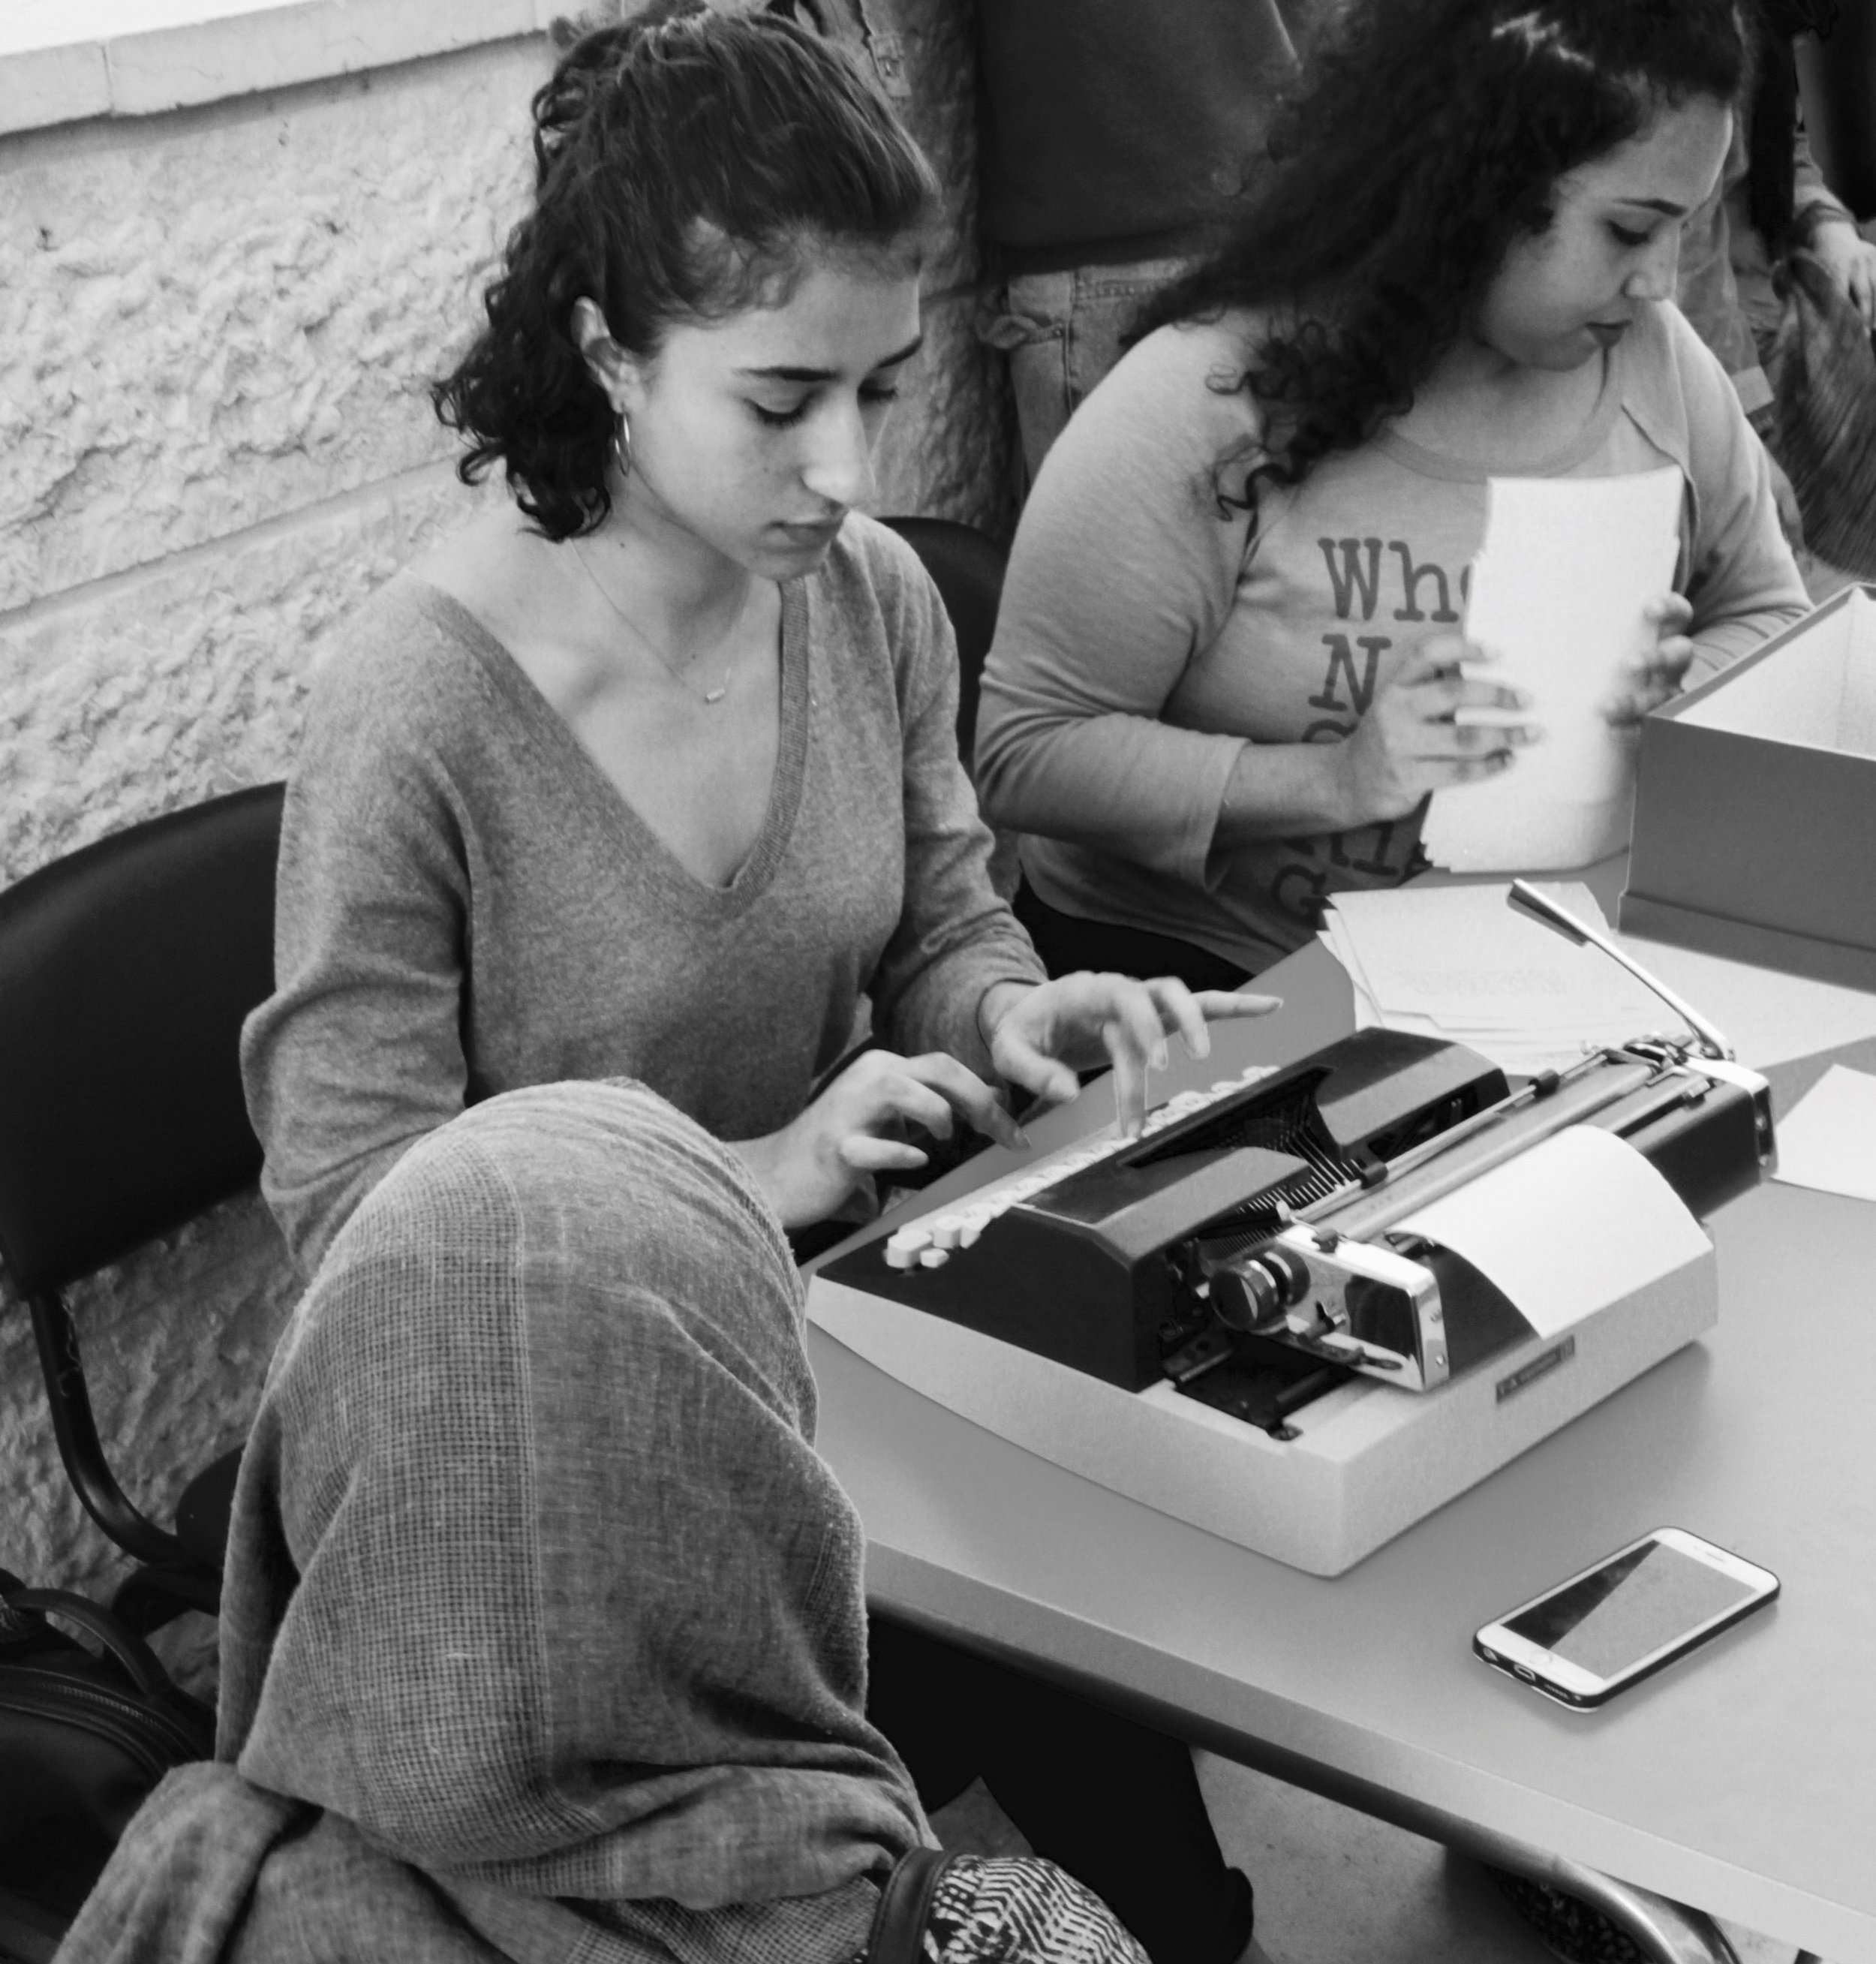 BBC Arabic - Not Your Habibti is a project created by BabyFist's founder, Yasmeen, to document stories of street and sexual harassment in Palestine. She set up a typewrite in Clock Circle in Ramallah and took down tens of stories. BBC covered her project for BBC's 100 Women of 2017.Watch the video here.